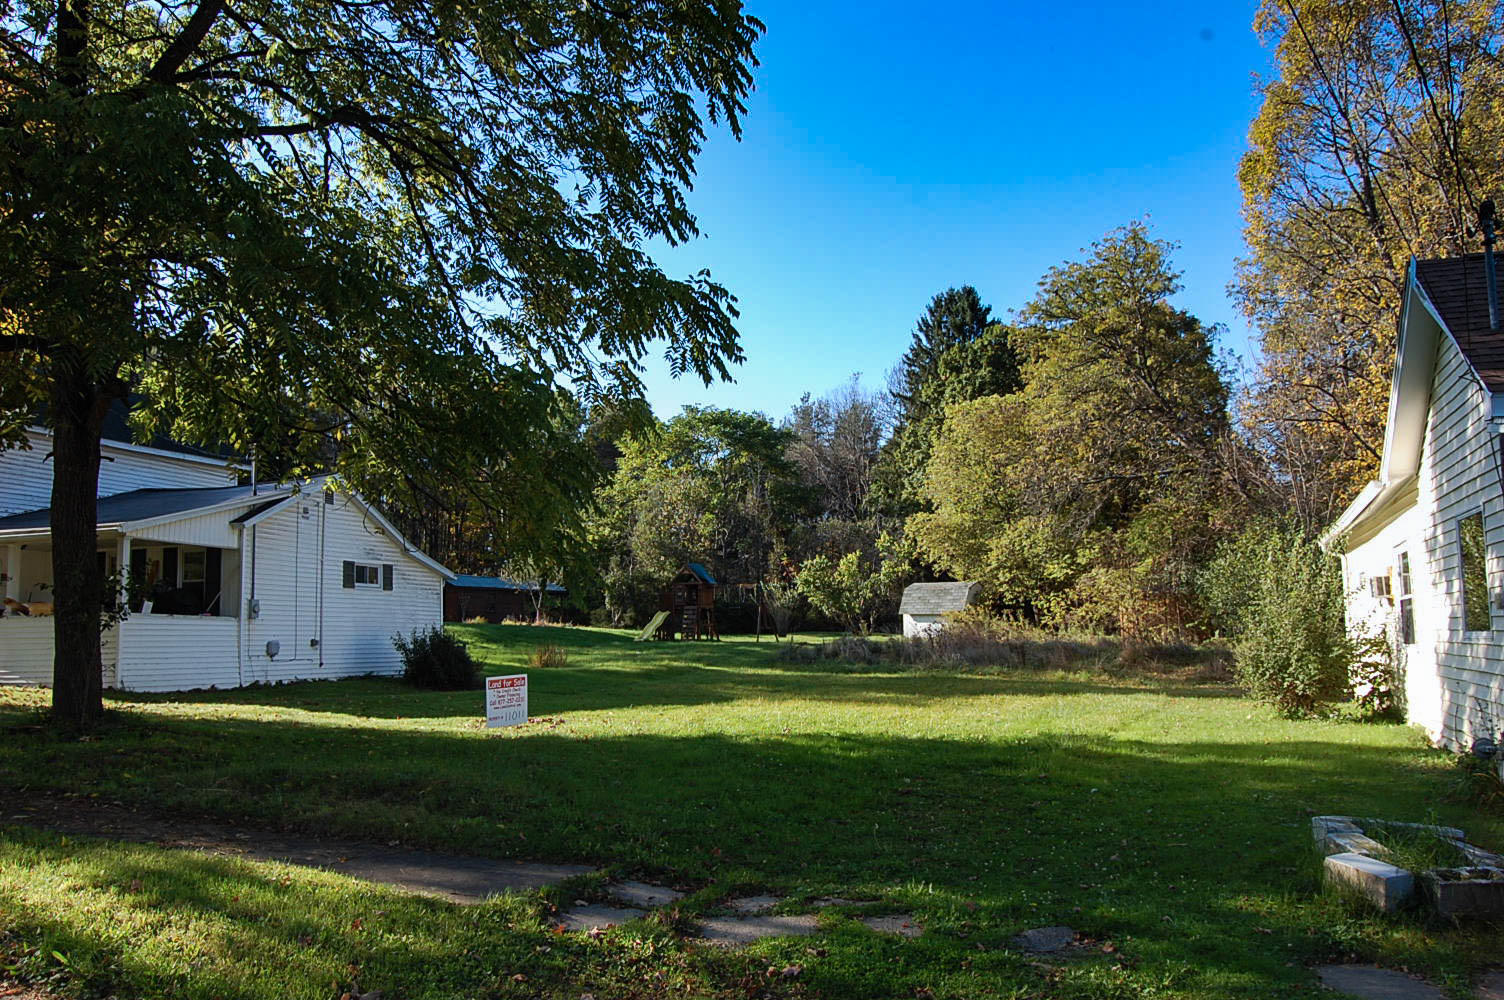 Discover the Beauty of Rural New York - Image 5